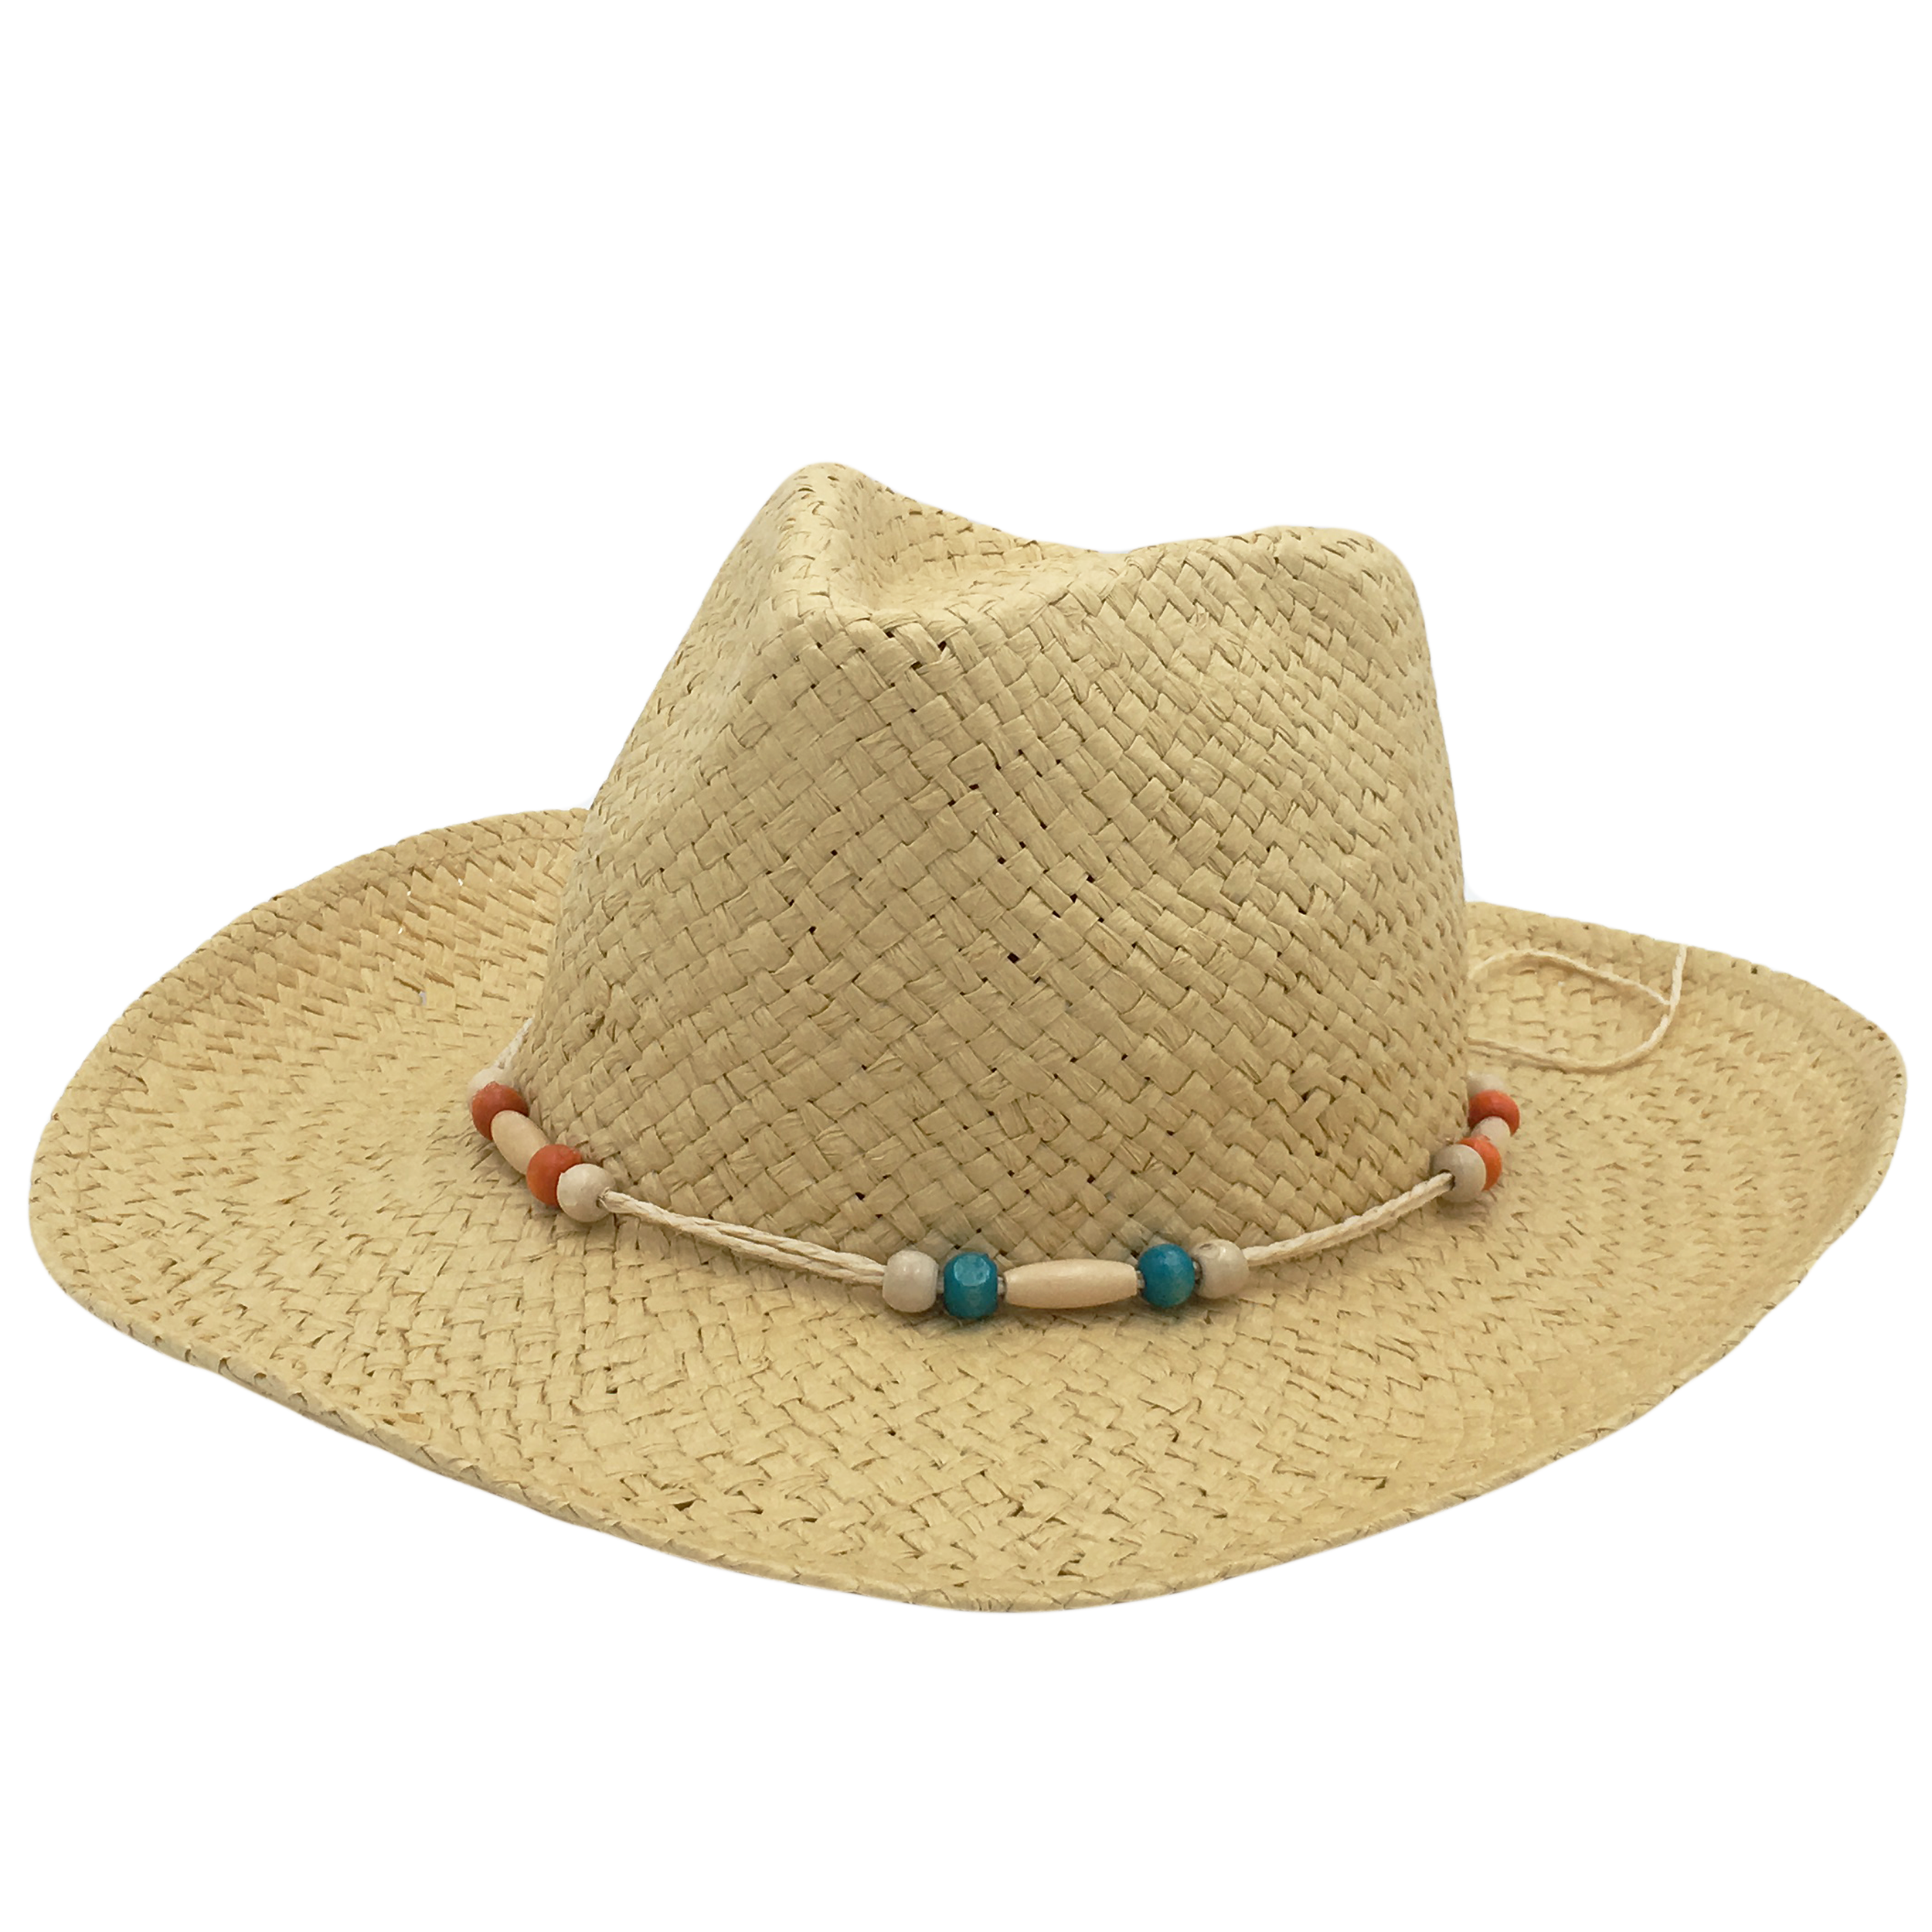 Copy of Copy of Custom Accessory Straw Hat